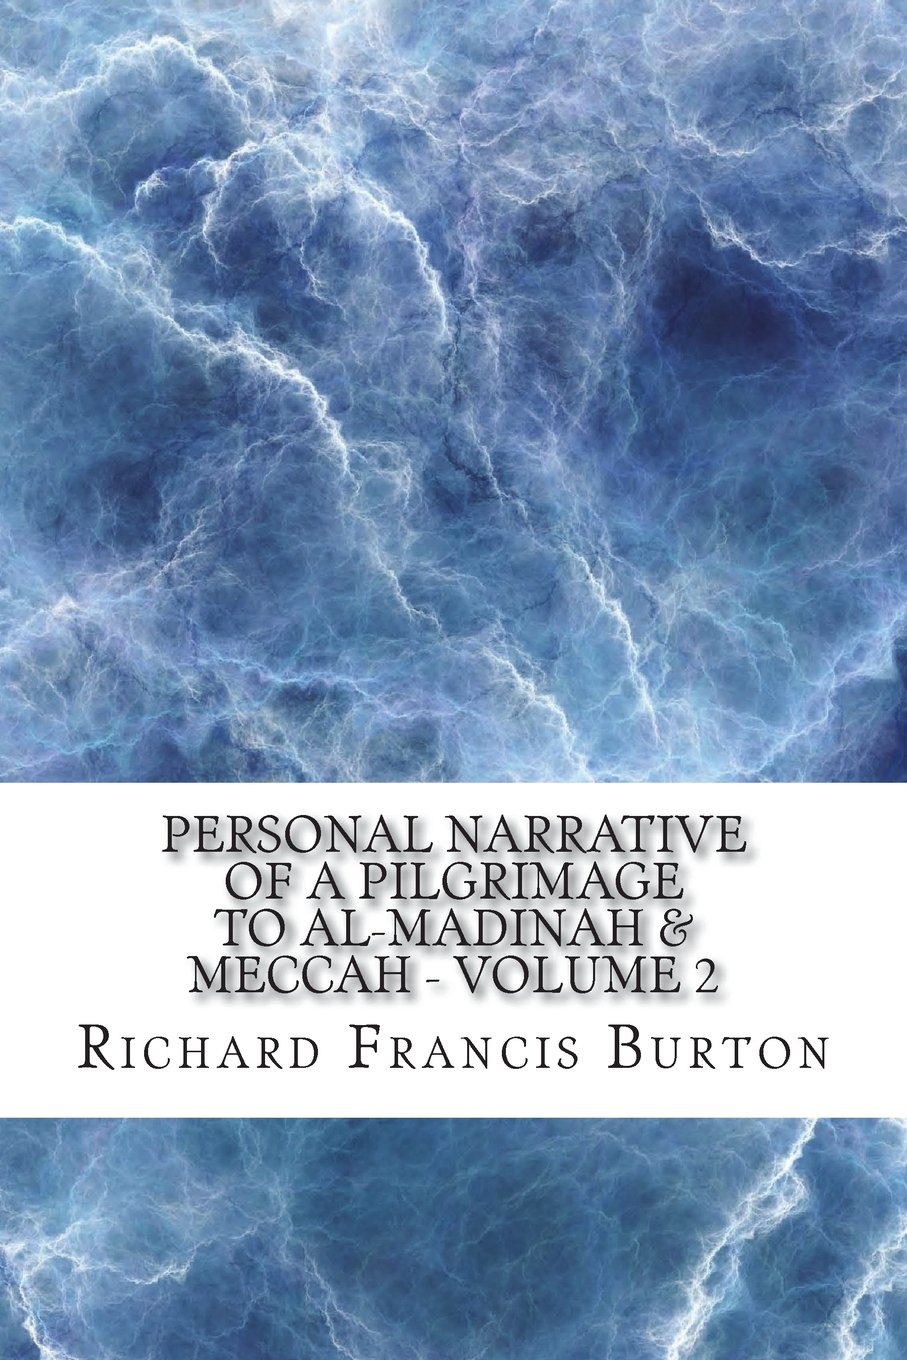 Read Online Personal Narrative of a Pilgrimage to Al-Madinah & Meccah - Volume 2 pdf epub